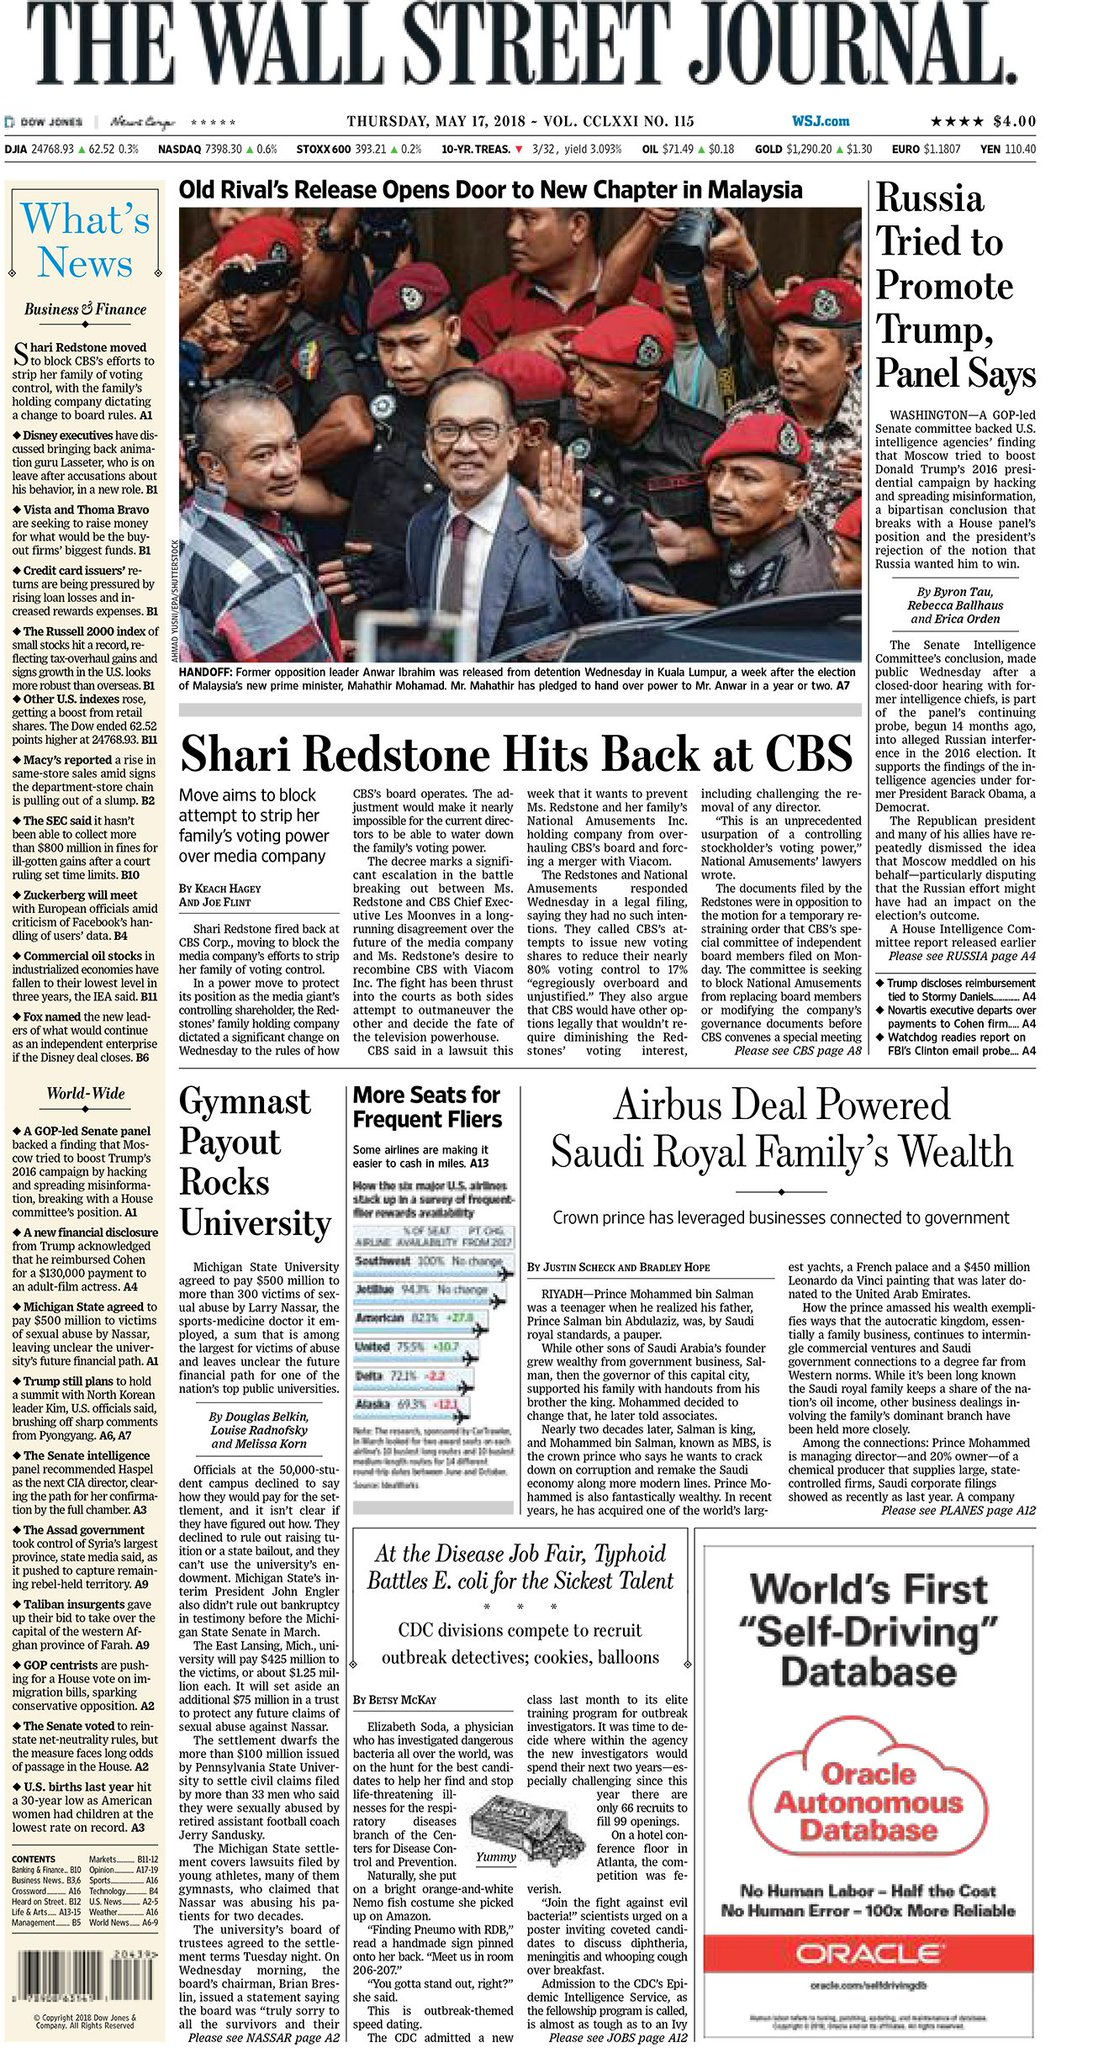 Take an early look at the front page of The Wall Street Journal https://t.co/5xQPDOUKJQ https://t.co/HwZaq3z038